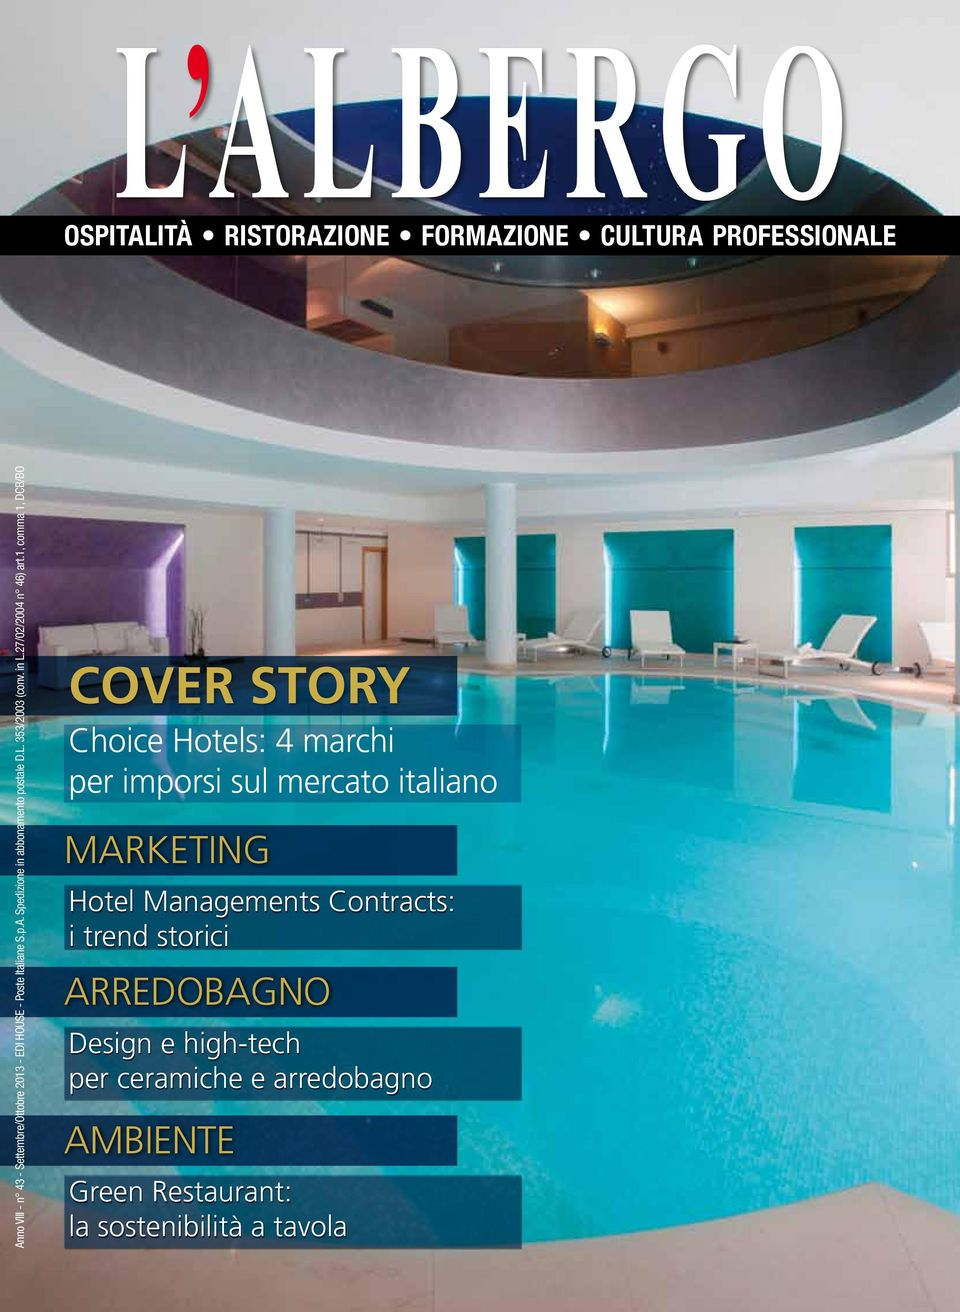 1, comma 1, DCB/BO COVER STORY Choice Hotels: 4 marchi per imporsi sul mercato italiano Marketing Hotel Managements